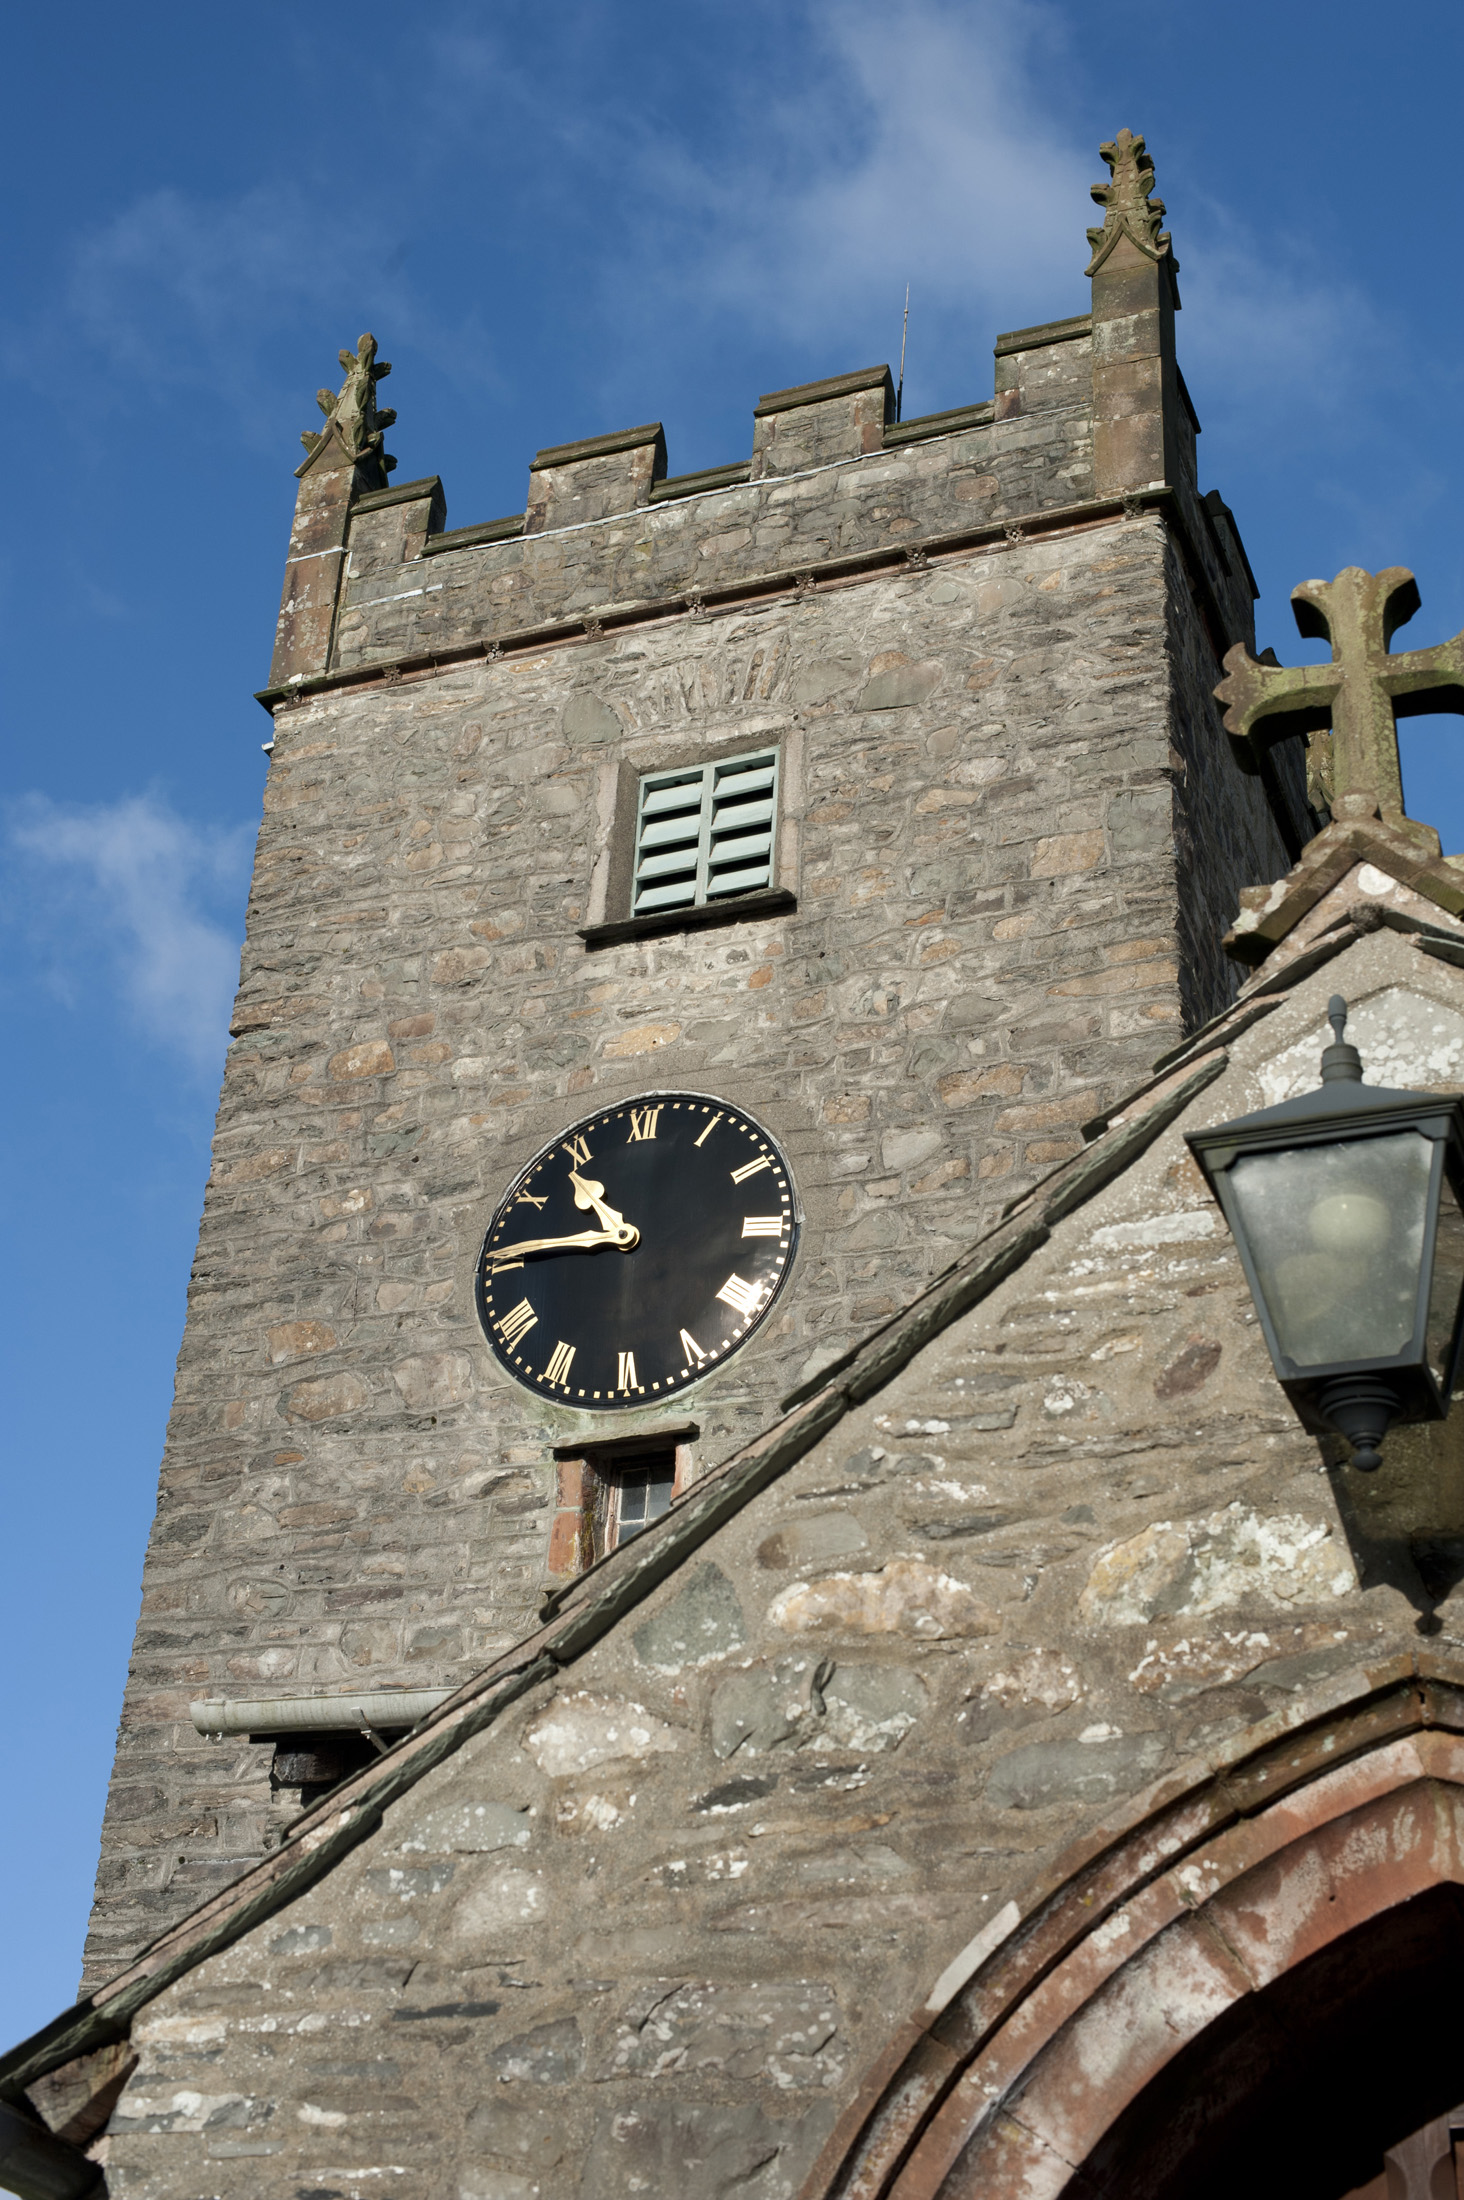 The tower of St Michael and All Angels church, hawkshead, cumbria